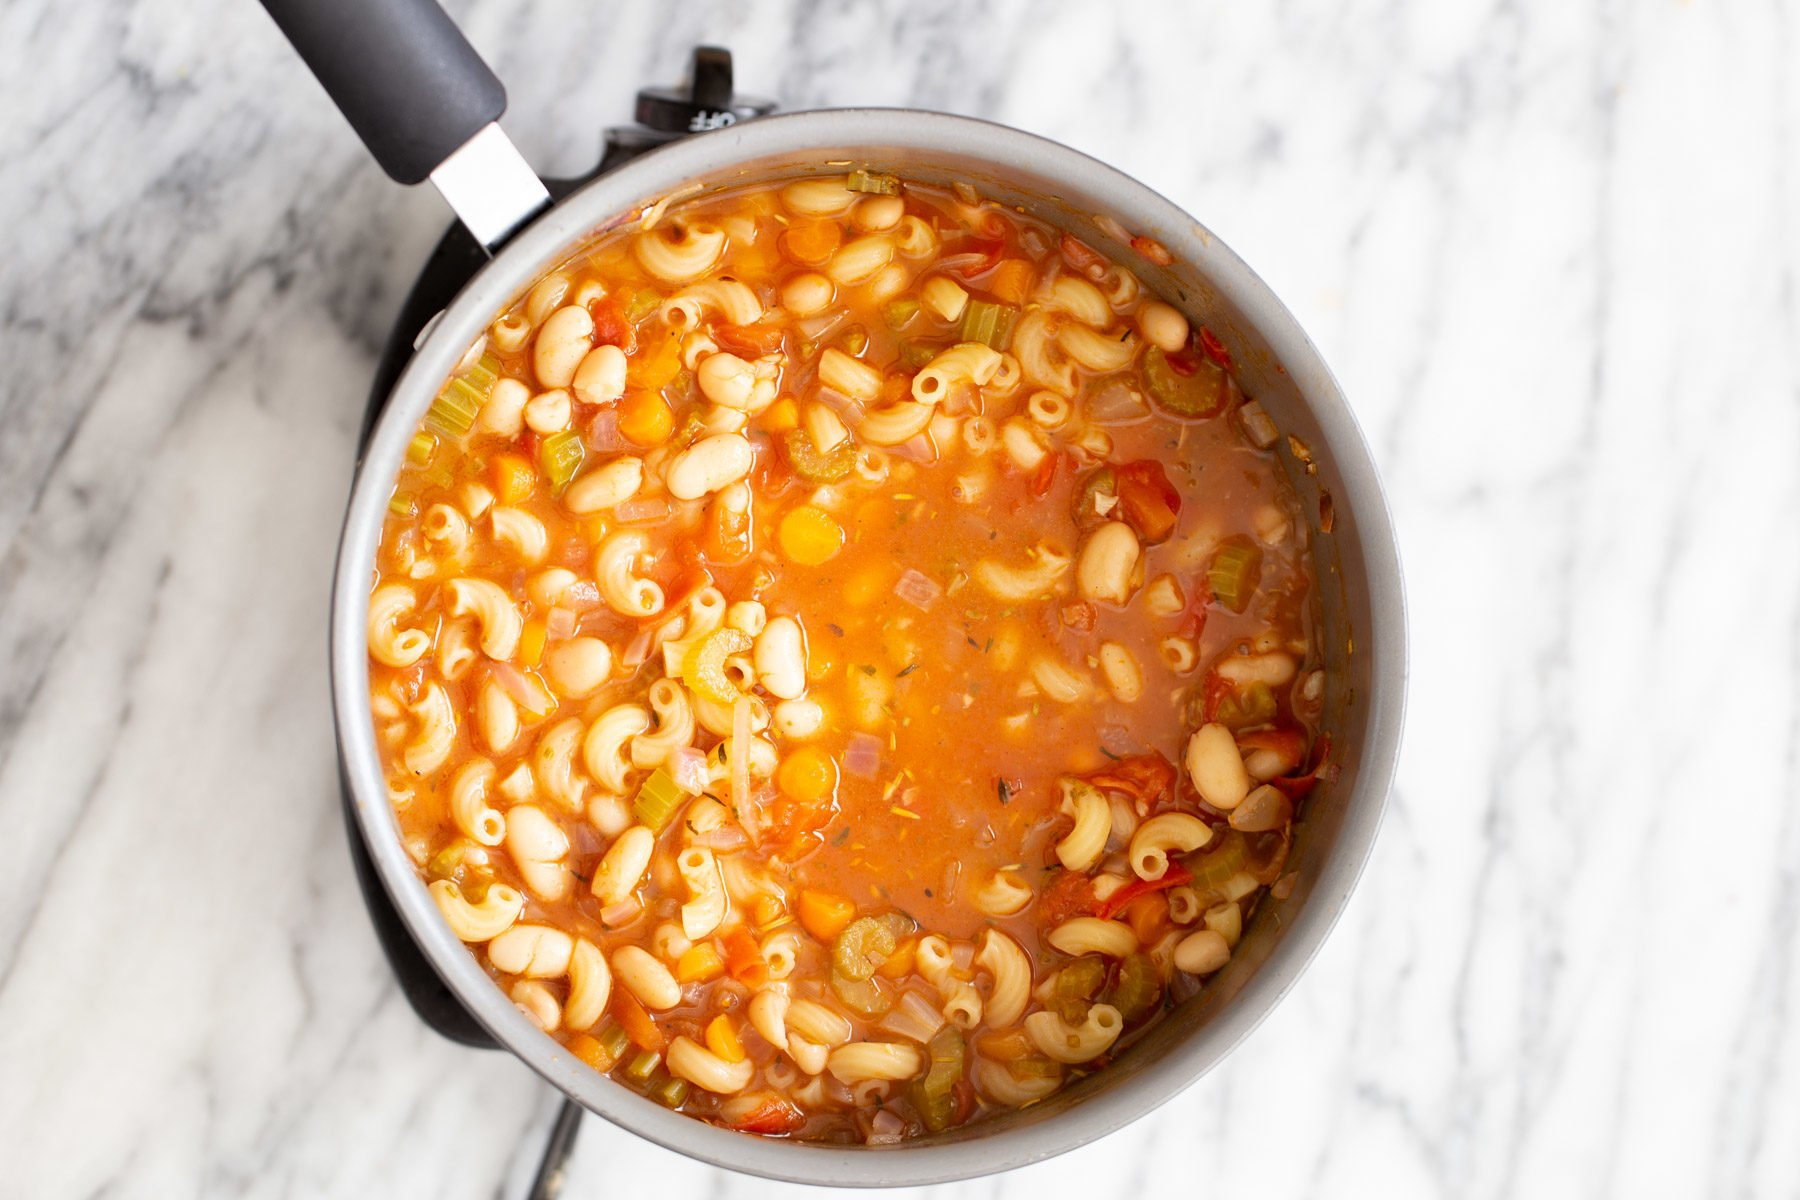 pasta and white beans simmering in tomato broth in a saucepan